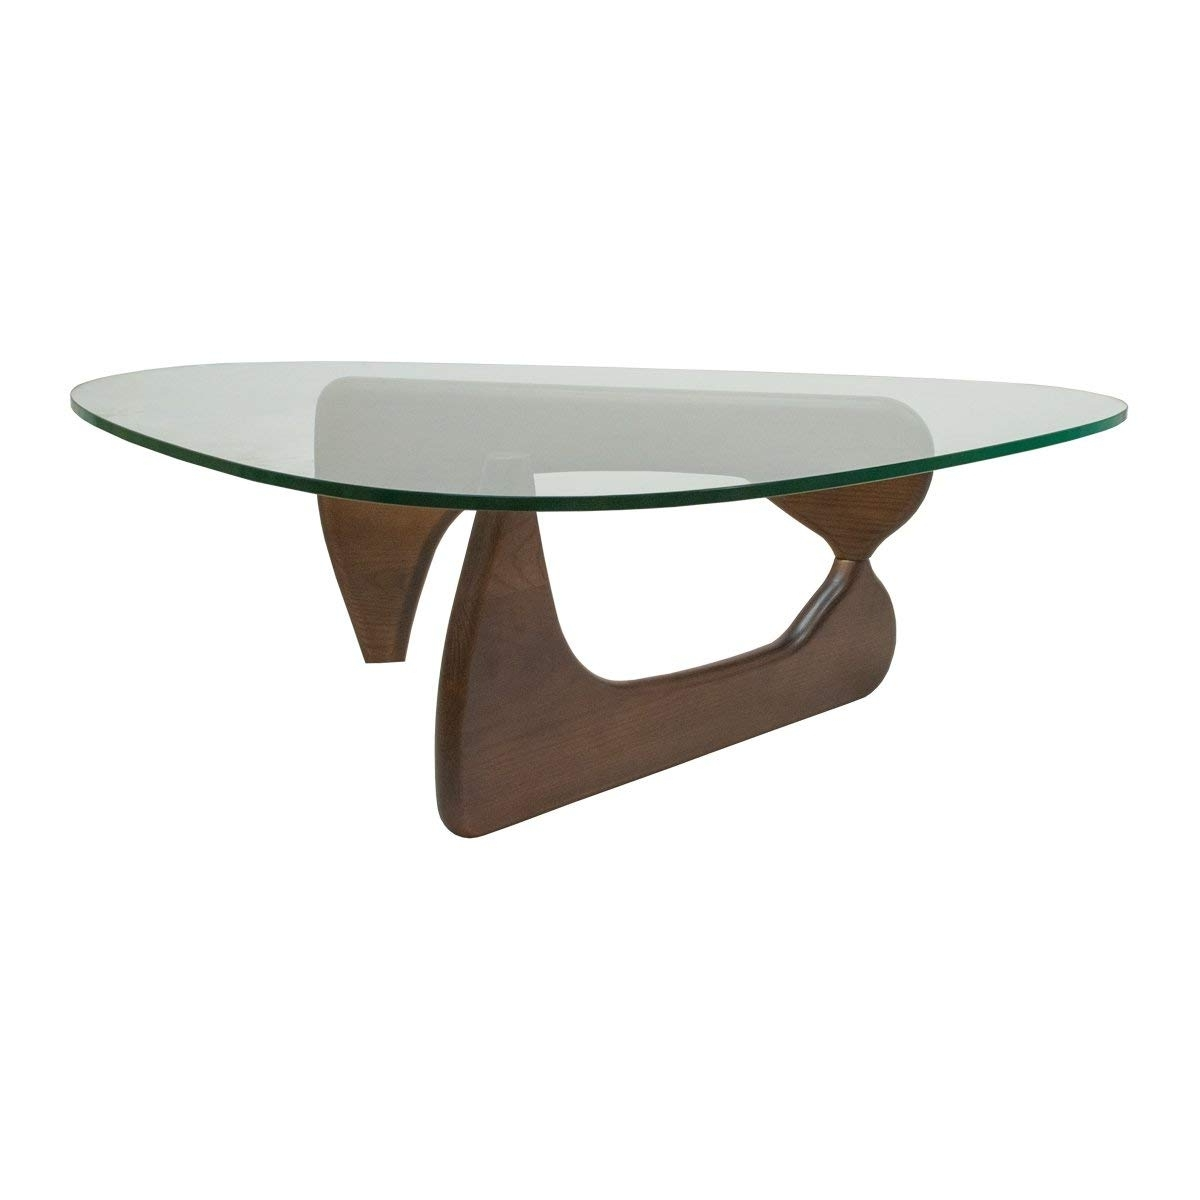 Newest Amazon: Mod Made Tribeca Coffee Table, Black: Kitchen & Dining For Carly 3 Piece Triangle Dining Sets (View 23 of 25)